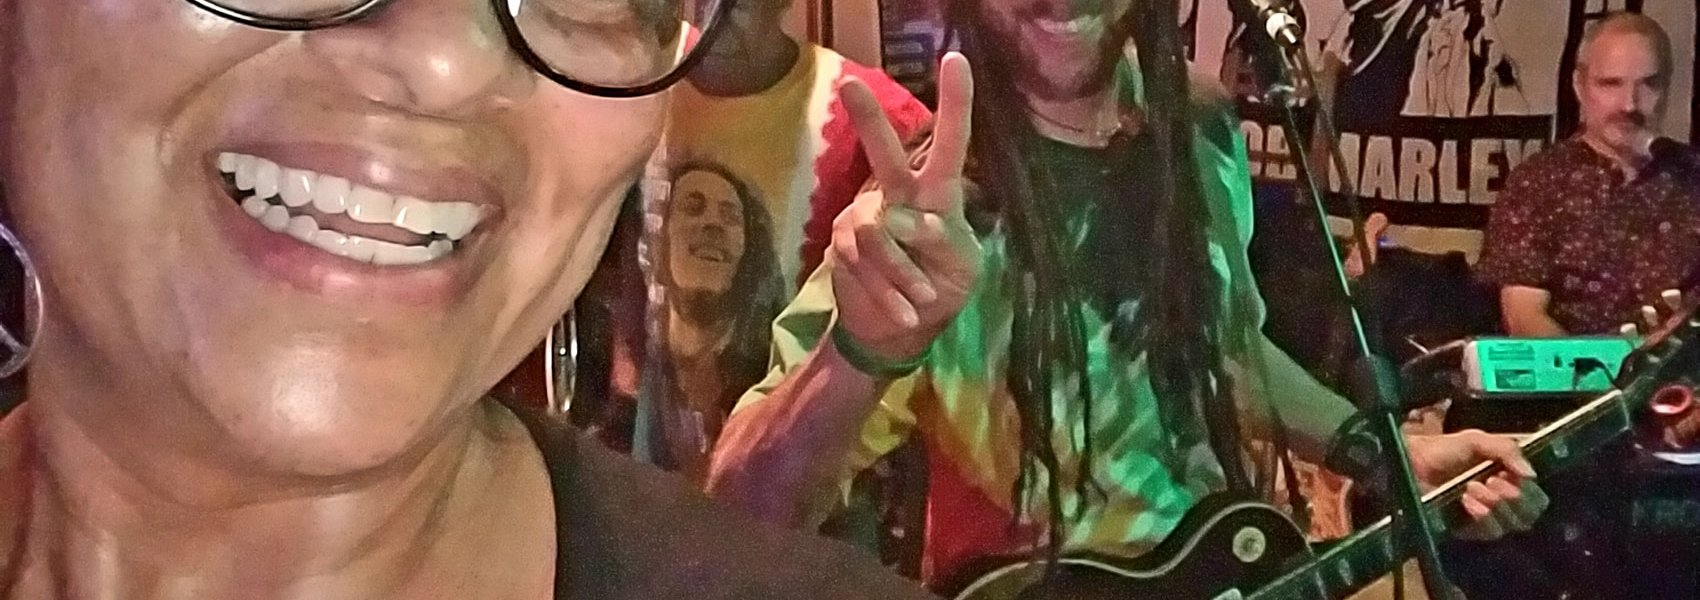 Reggae Brunch 2019 Wrap-up